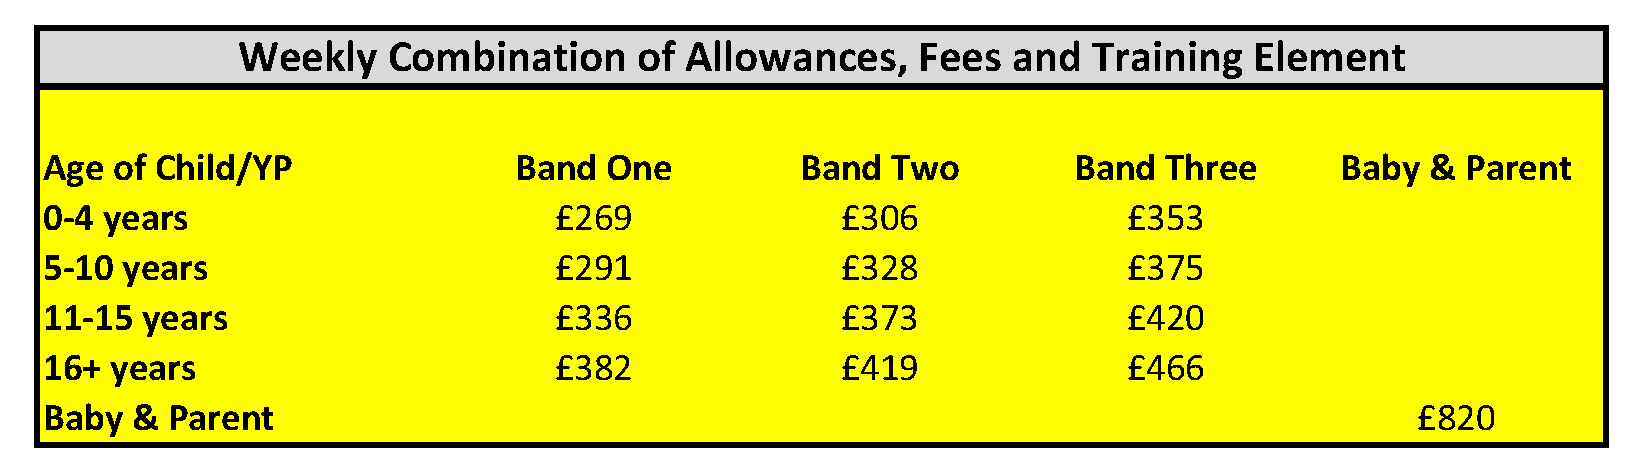 Image of table of weekly combination of allowances, fees and training element